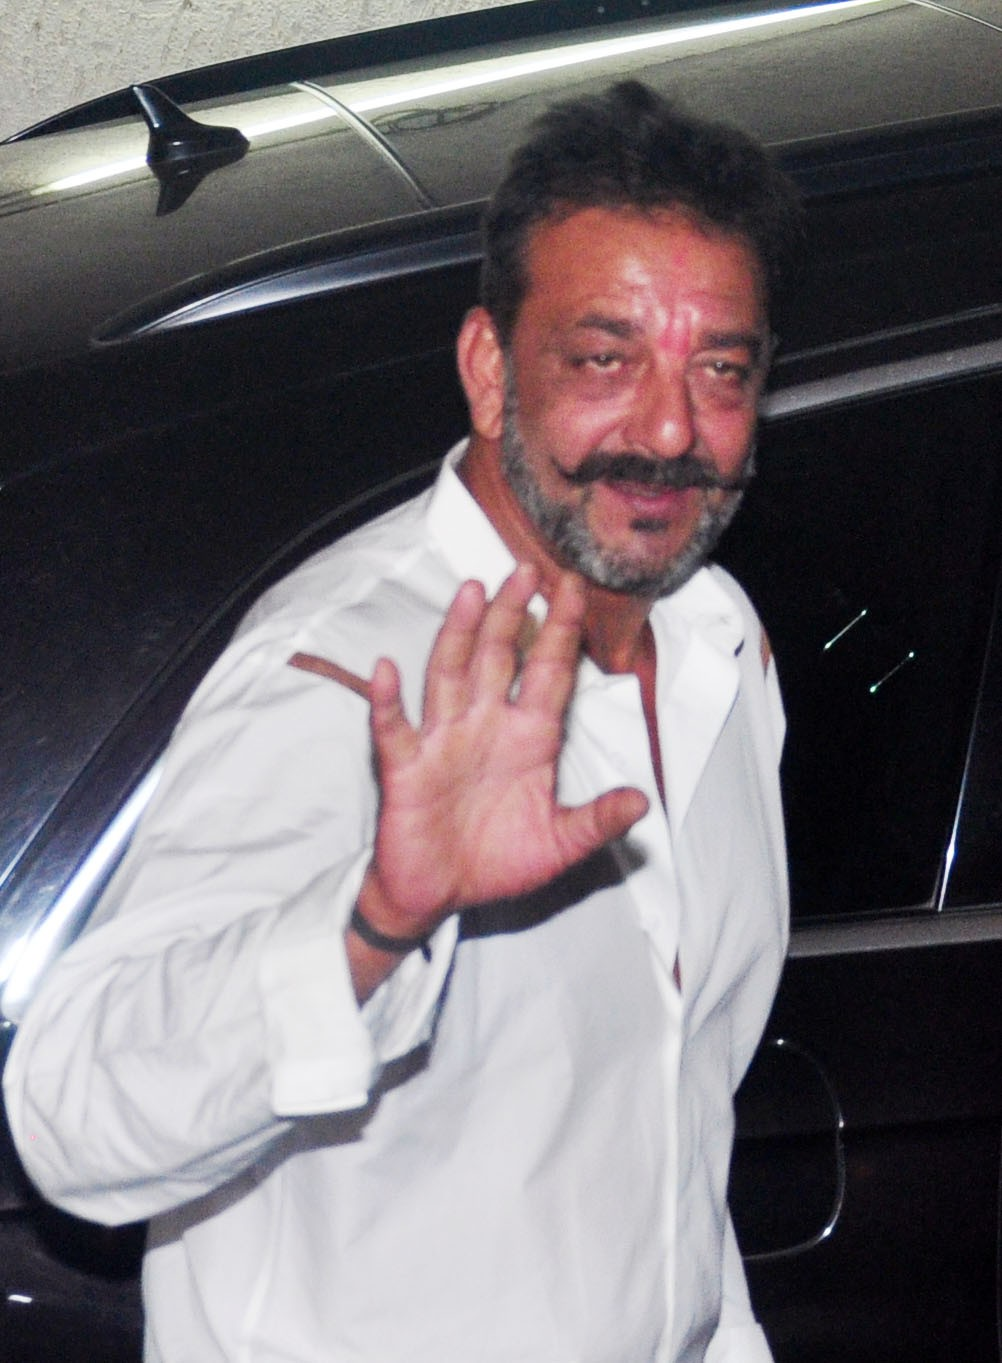 Sanjay Dutt Out on Parole; Rajkumar Hirani hosts Special Screening of 'PK' for Him